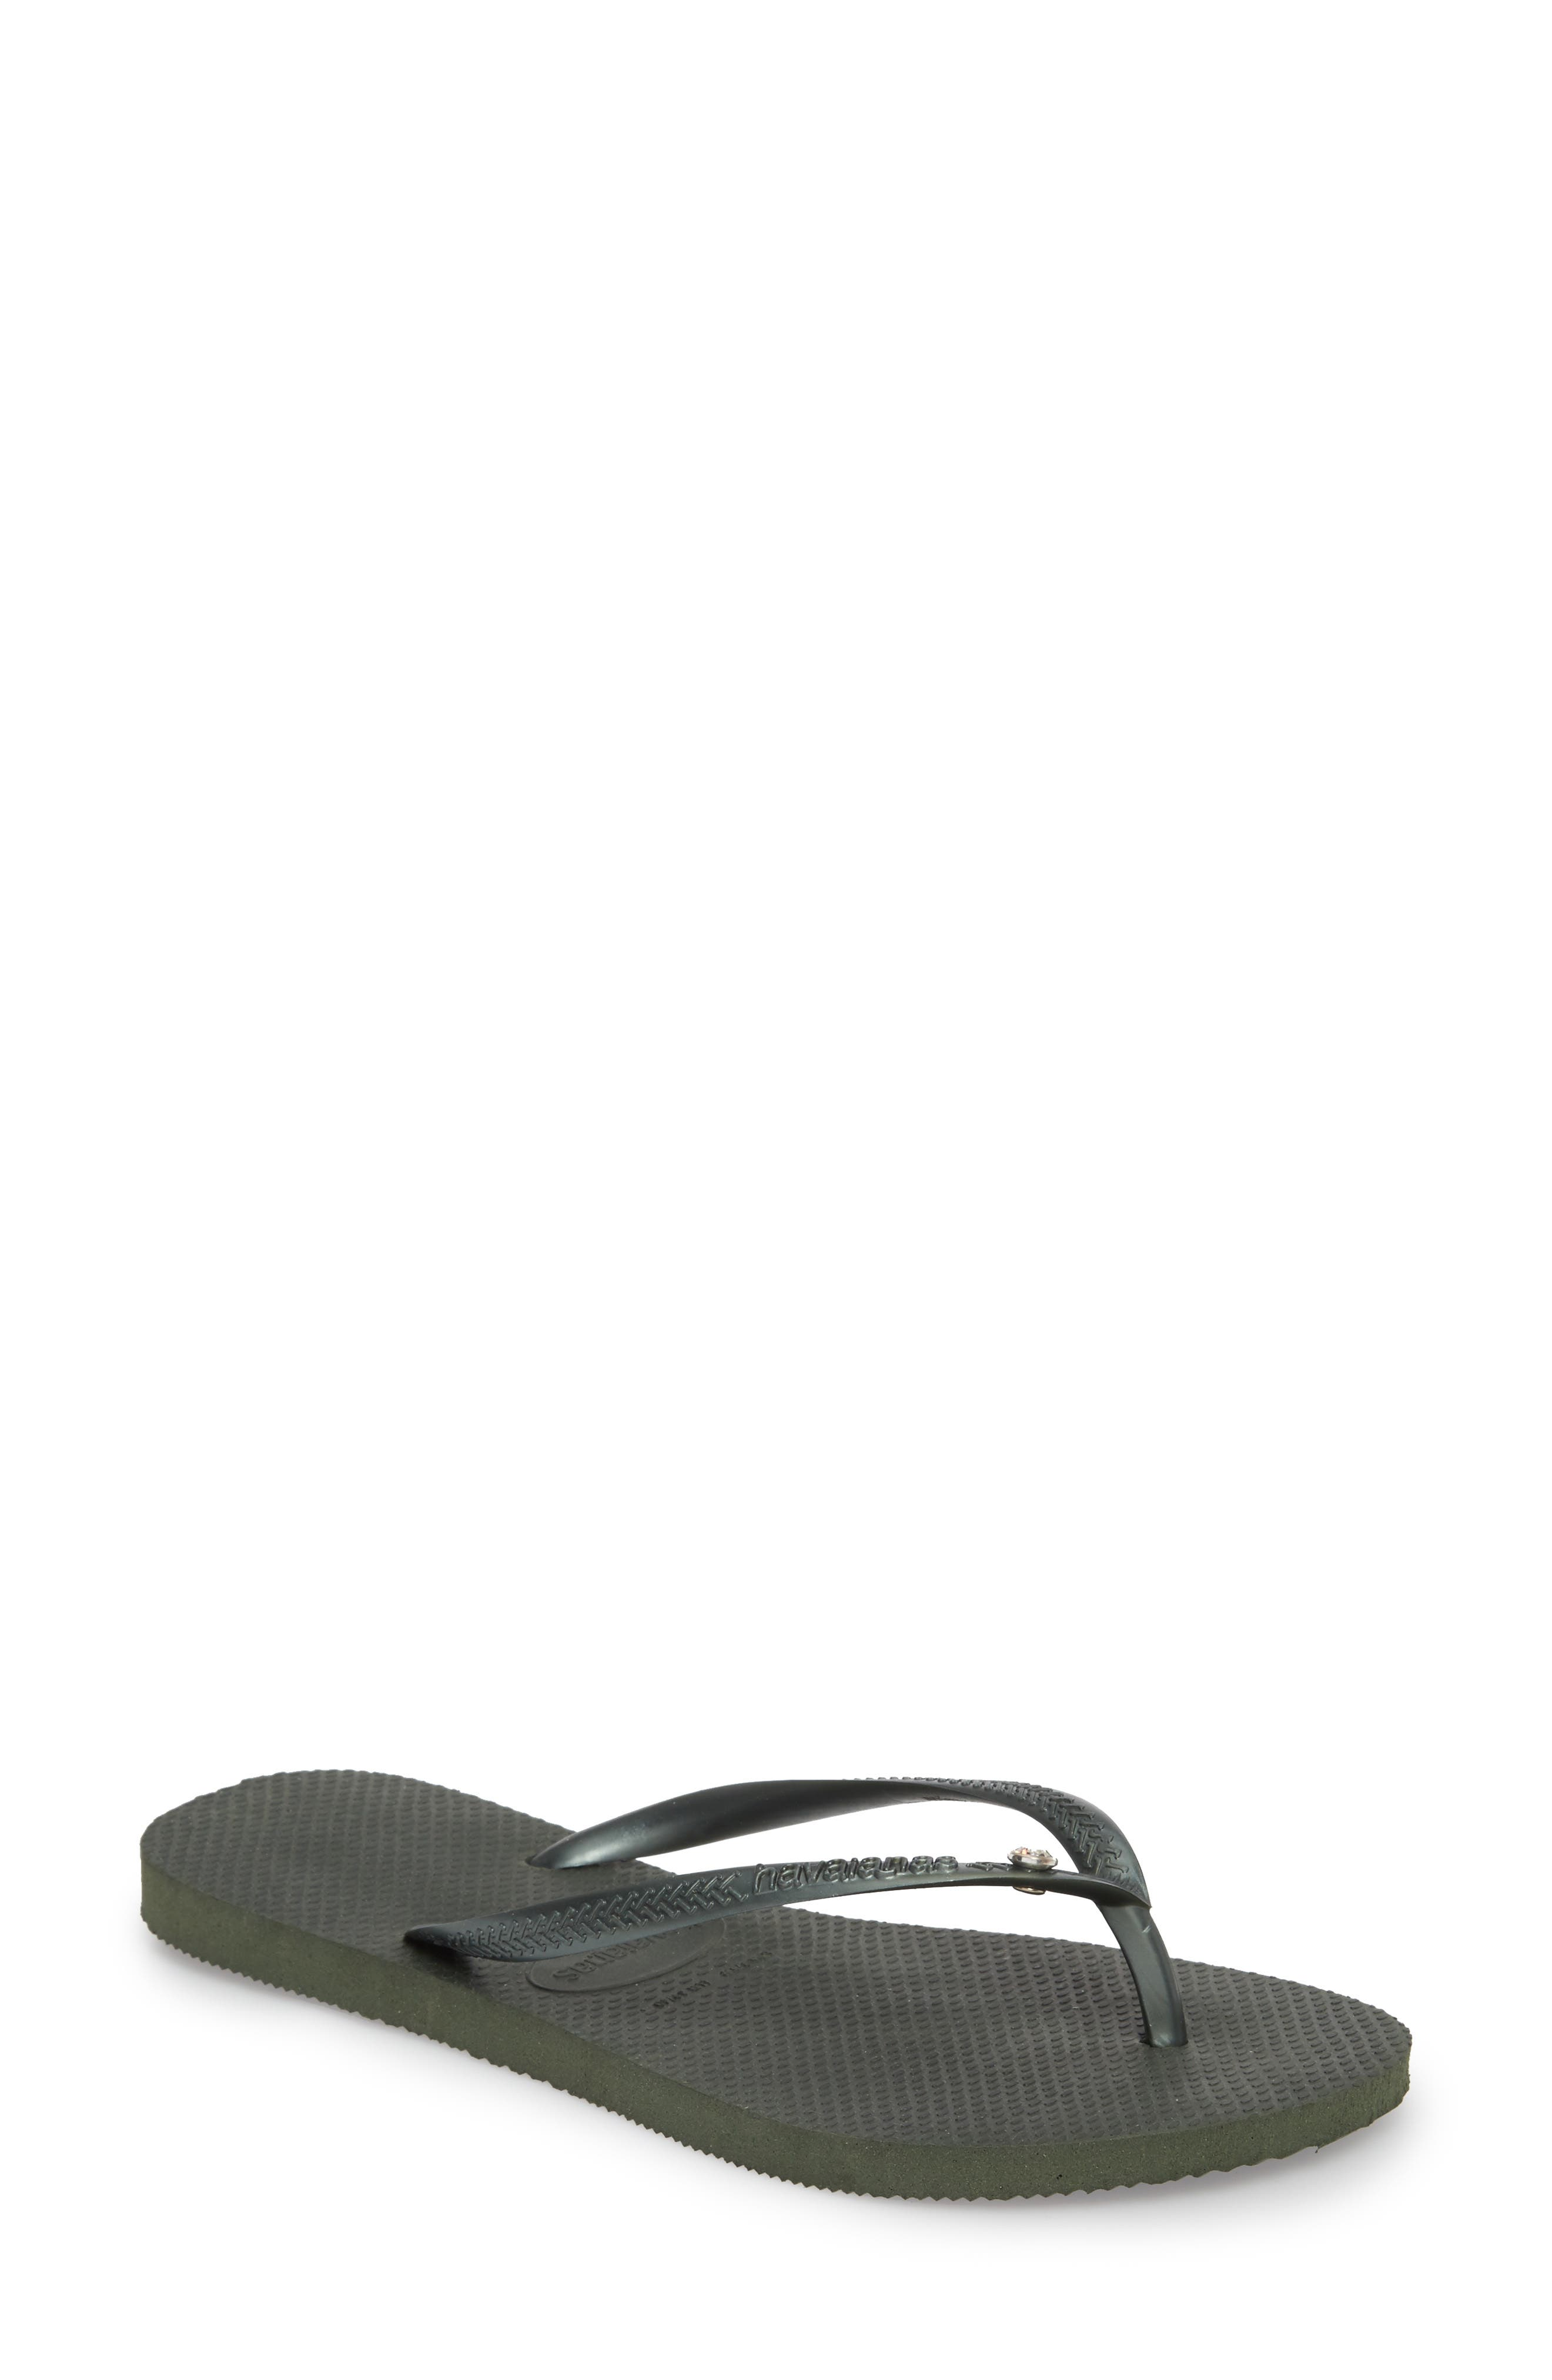 Alternate Image 1 Selected - Havaianas 'Slim Crystal Glamour' Flip Flop (Women)